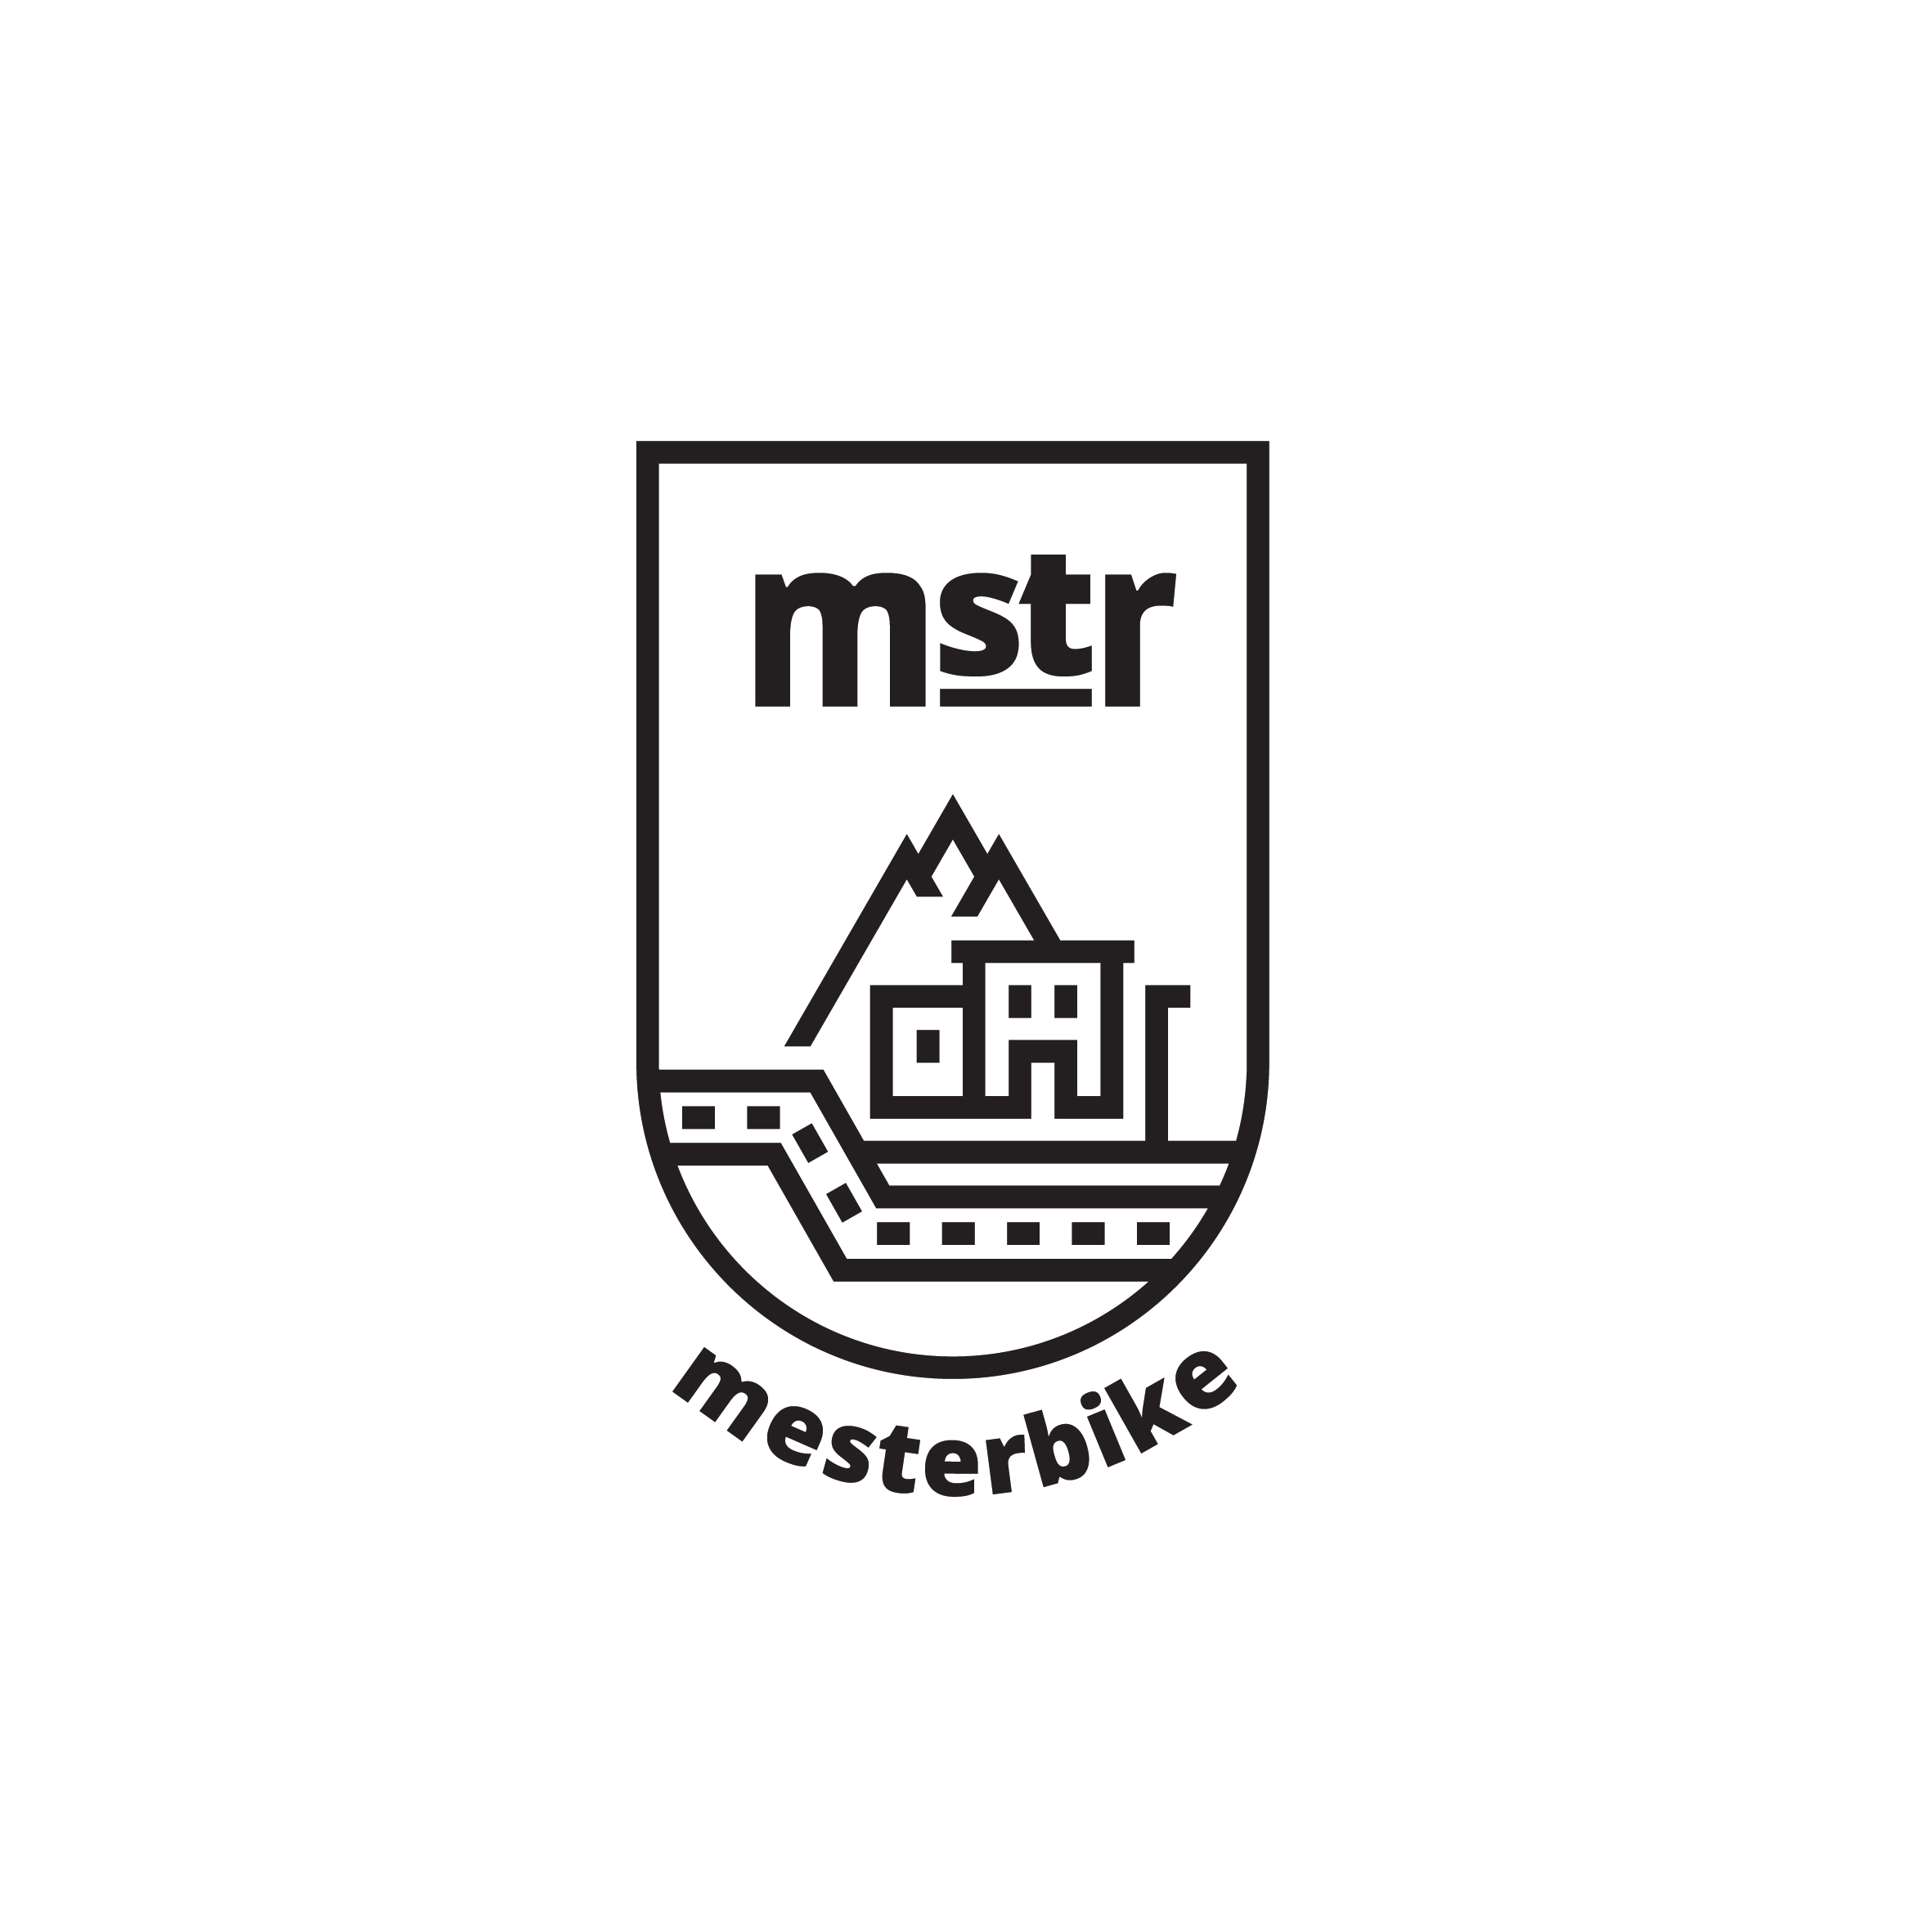 MESTERBIKE & COFFEE PROJECT  Mester utca 11, 1095 Budapest  Mon - Fri: 8AM - 7PM  Sat: 9AM - 1PM   WEBSITE